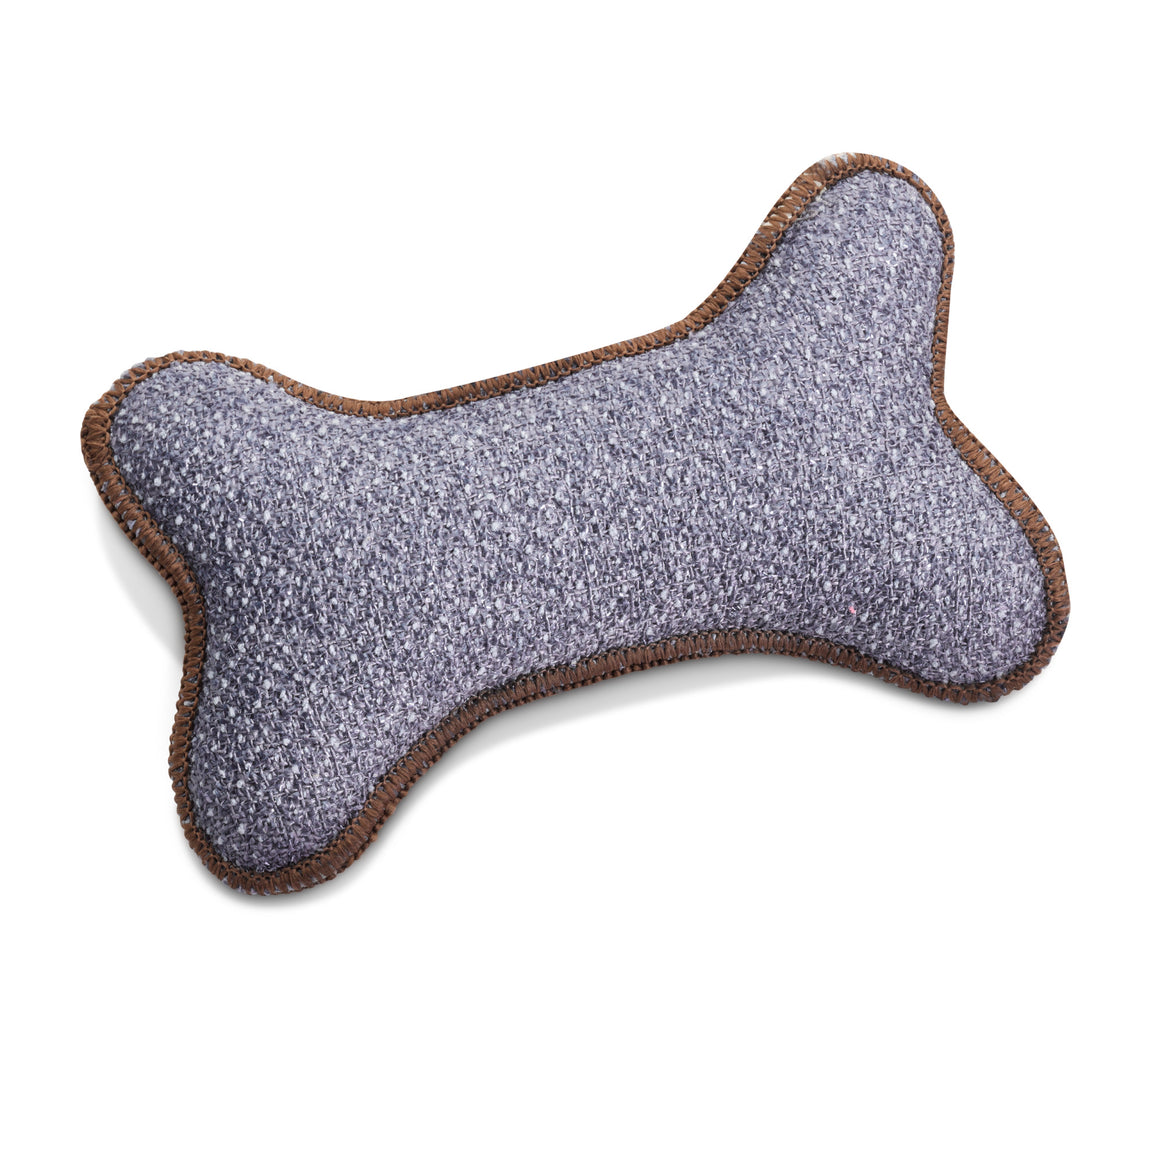 Pet Bowl Scrubber - Bone-Shaped Scrubber Keeps Pet Bowl Cleaning Separate From People Bowl Cleaning - Just Add Water